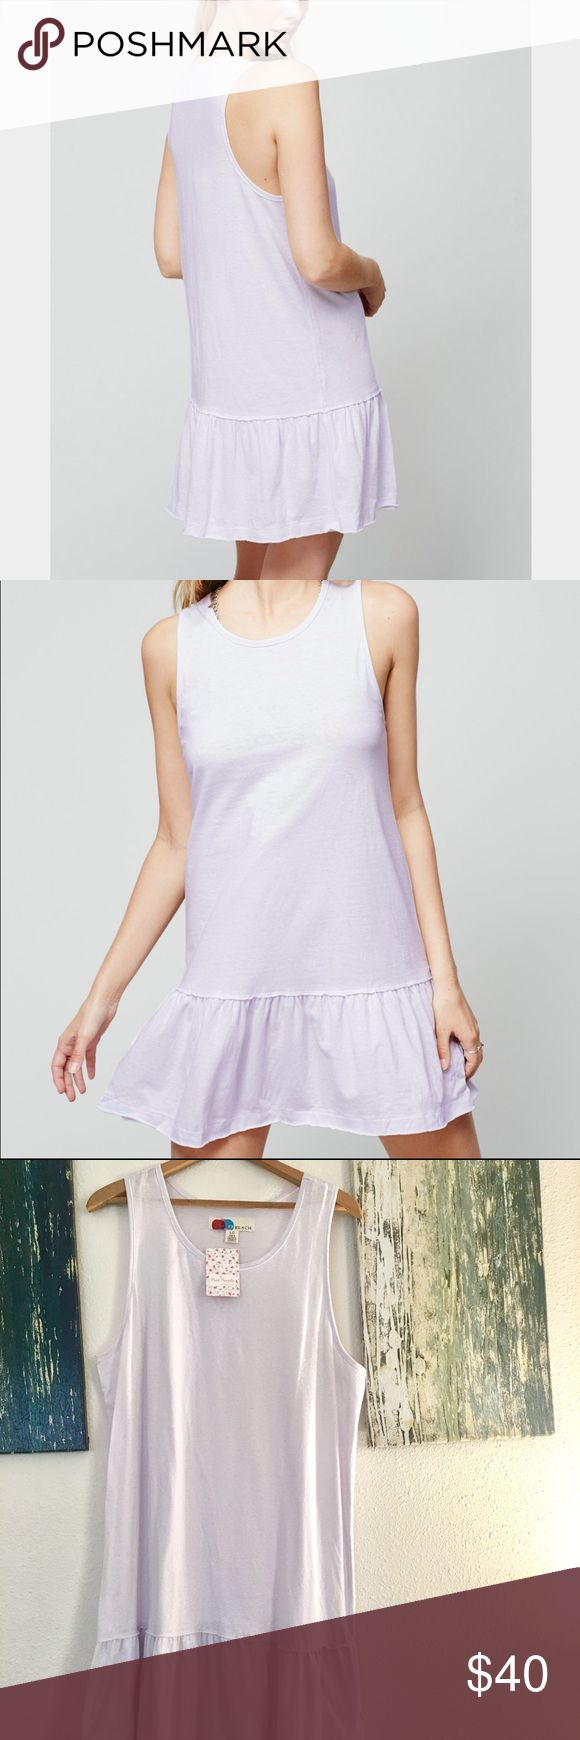 "Free People FB Brittany Peplum Dress Free People Brittany Peplum FP Beach Dress- new with tags- 100% cotton-figure skimming jersey-drop waist silhouette with a flounced skirt- the color is called ""purple""-but in my opinion it's a VERY light lavender- raw edges all over- unlined- perfect over a bathing suite or dress it up with heals and accessories for date night! Free People Dresses Midi"